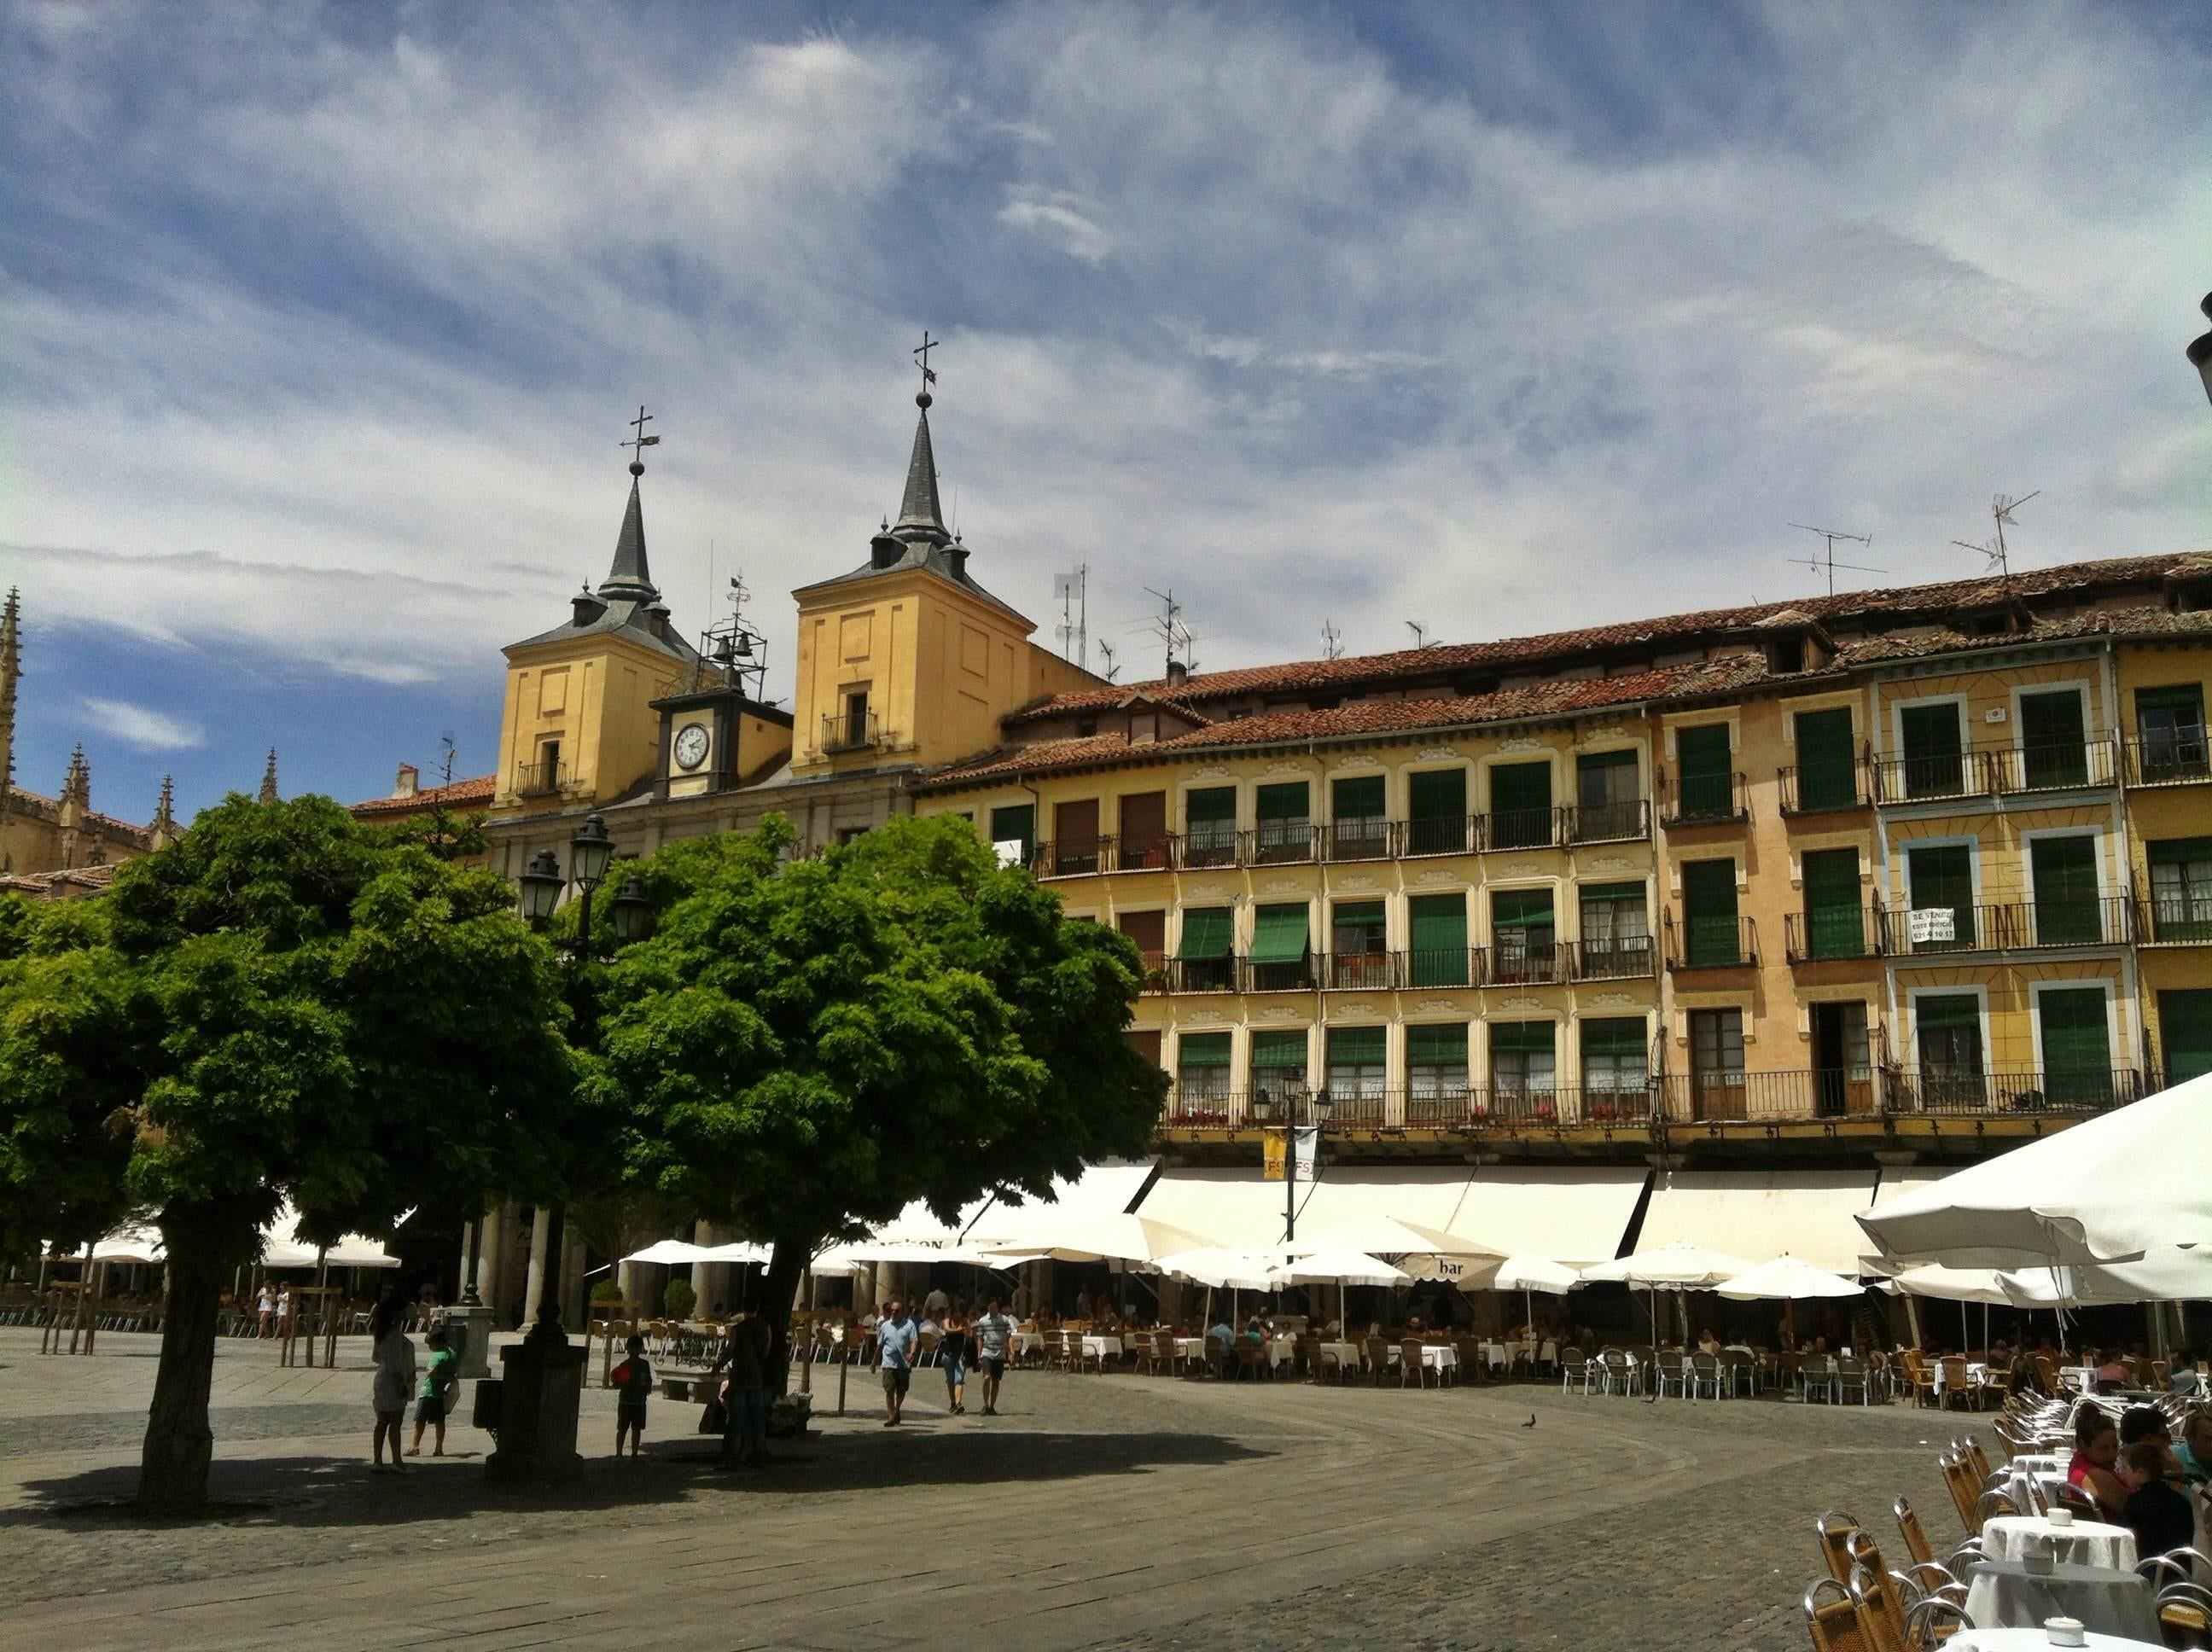 Palacio en Plaza Mayor